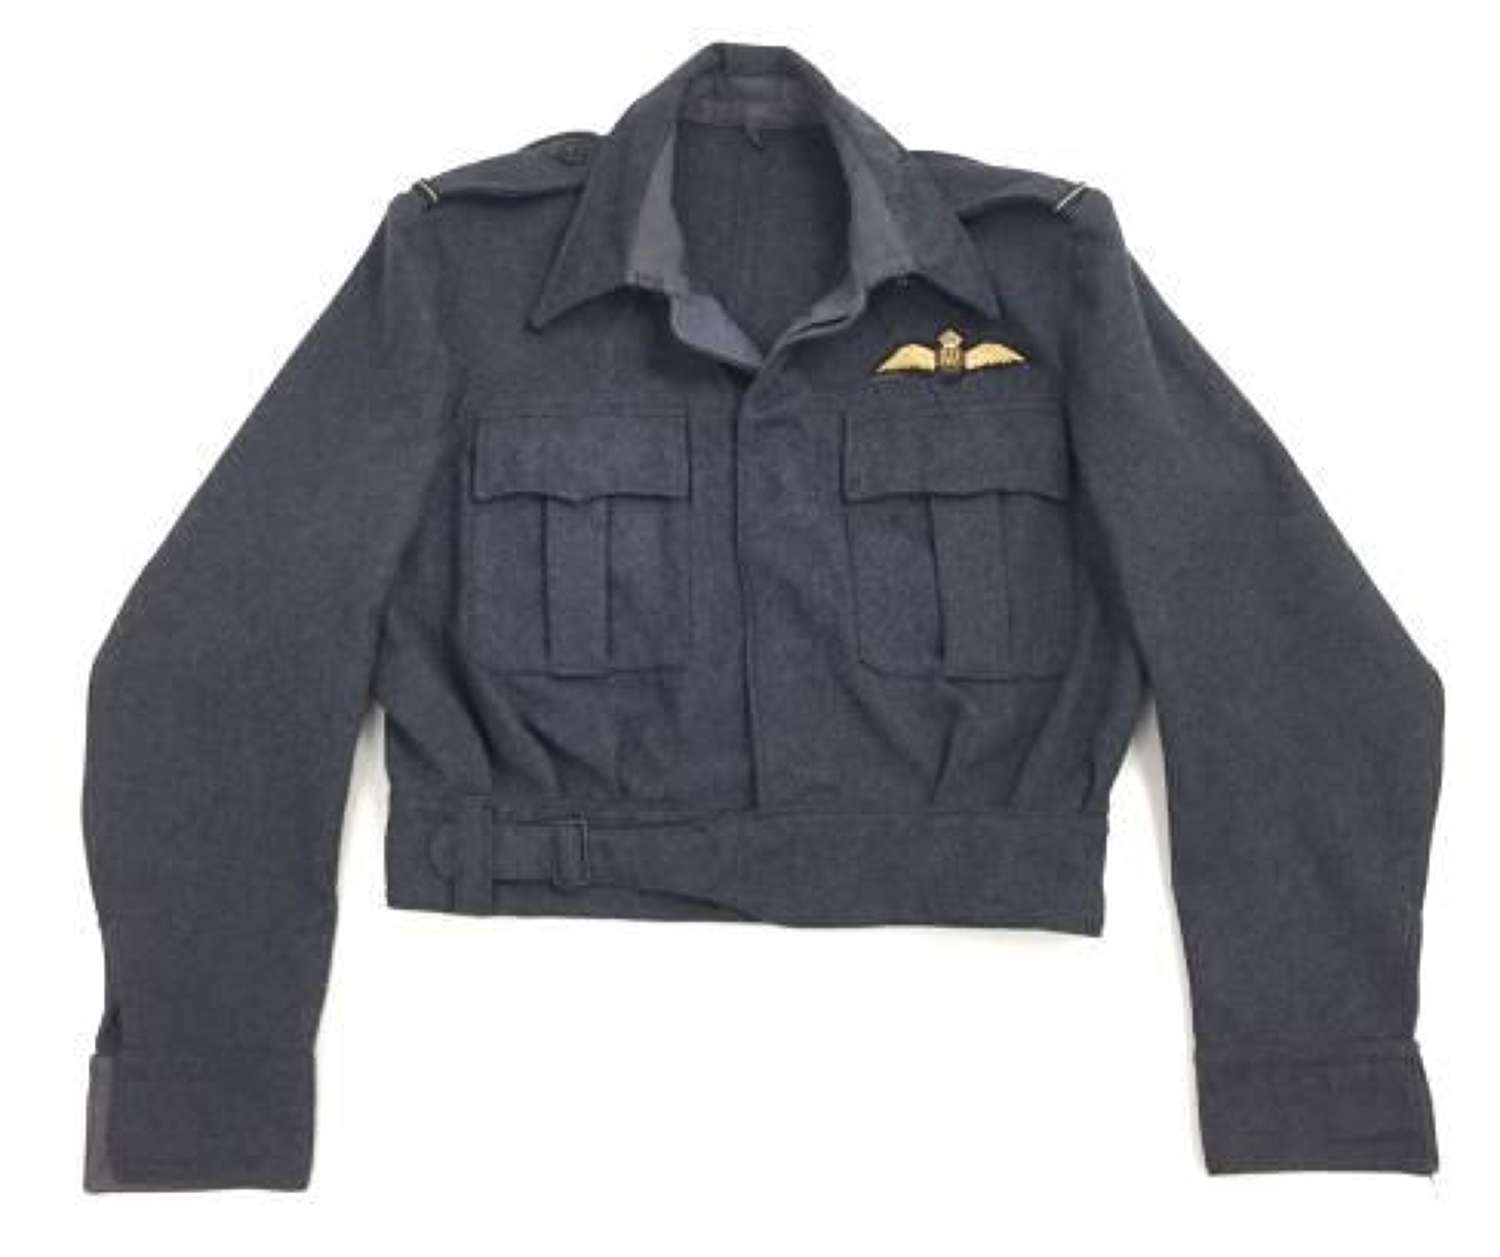 Original 1944 Dated RAF War Service Dress Blouse with Pilot Insignia - Size 15